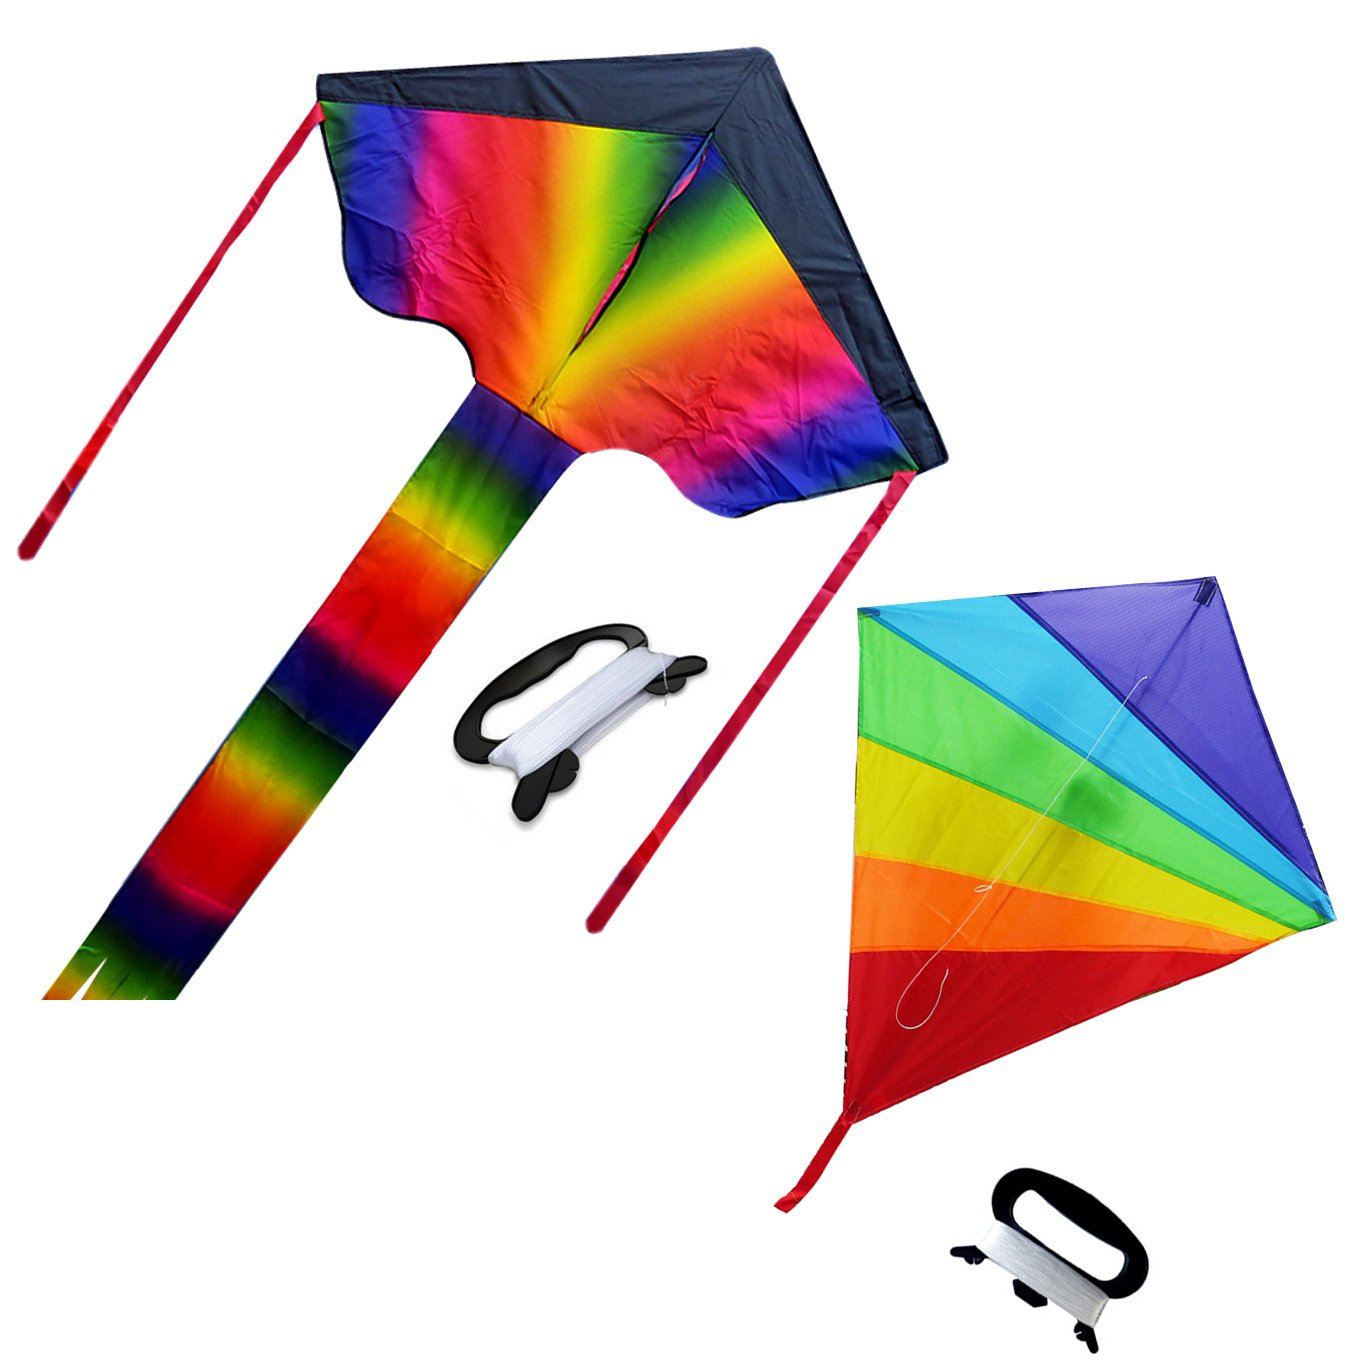 2 Pcs Rainbow Portable Kite Nylon & Polyester Material - Perfect Toy for Kids and Children Outdoor Games Activities - Fold-able Large 28 x 157 inches | Extra 328 Feet of Line